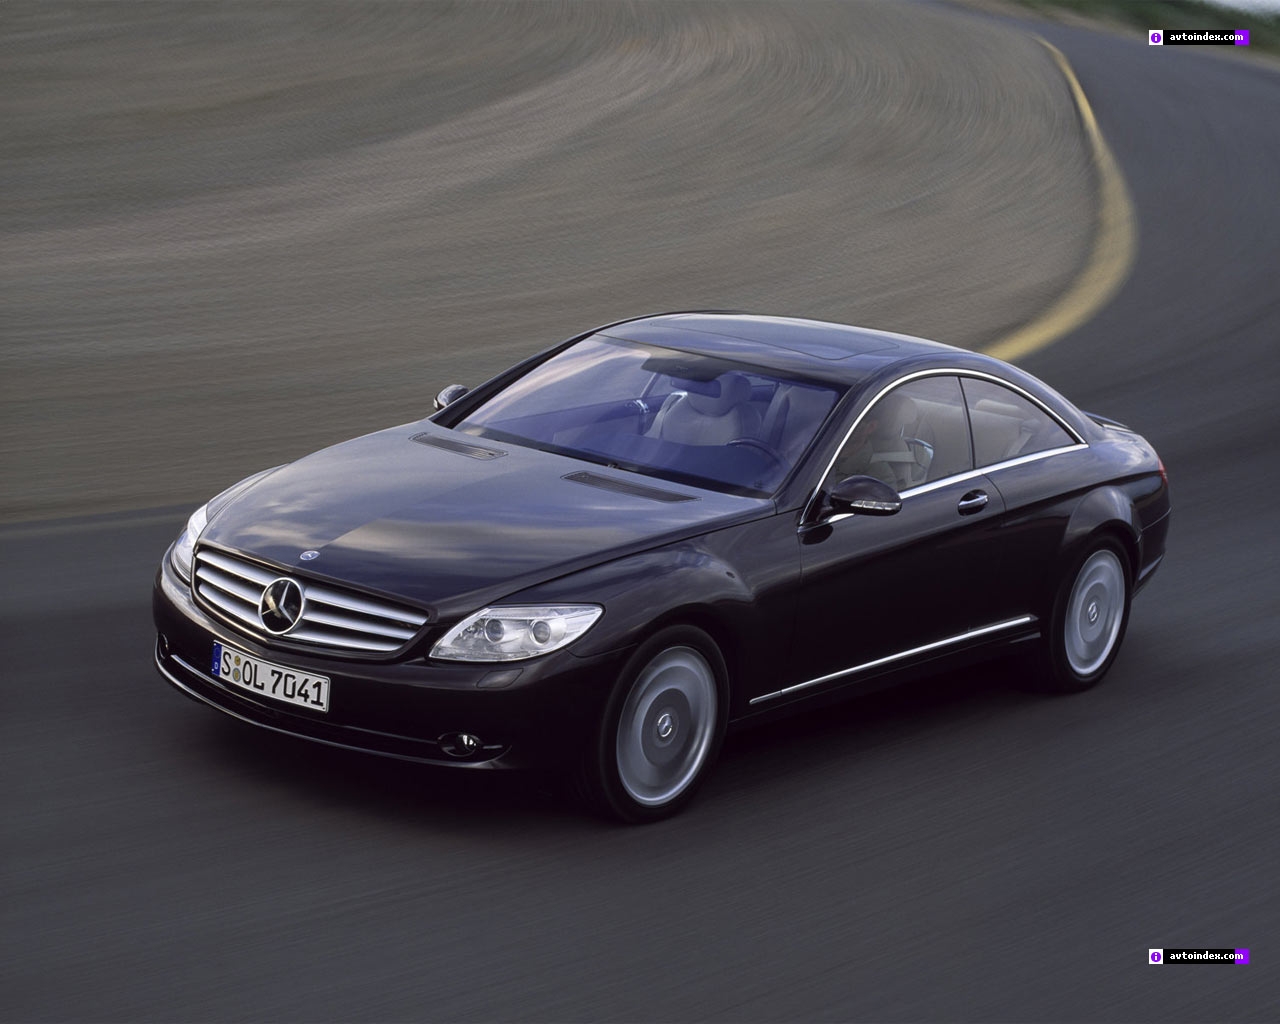 Benz Cl500 Pictures Mercedes-benz Cl500